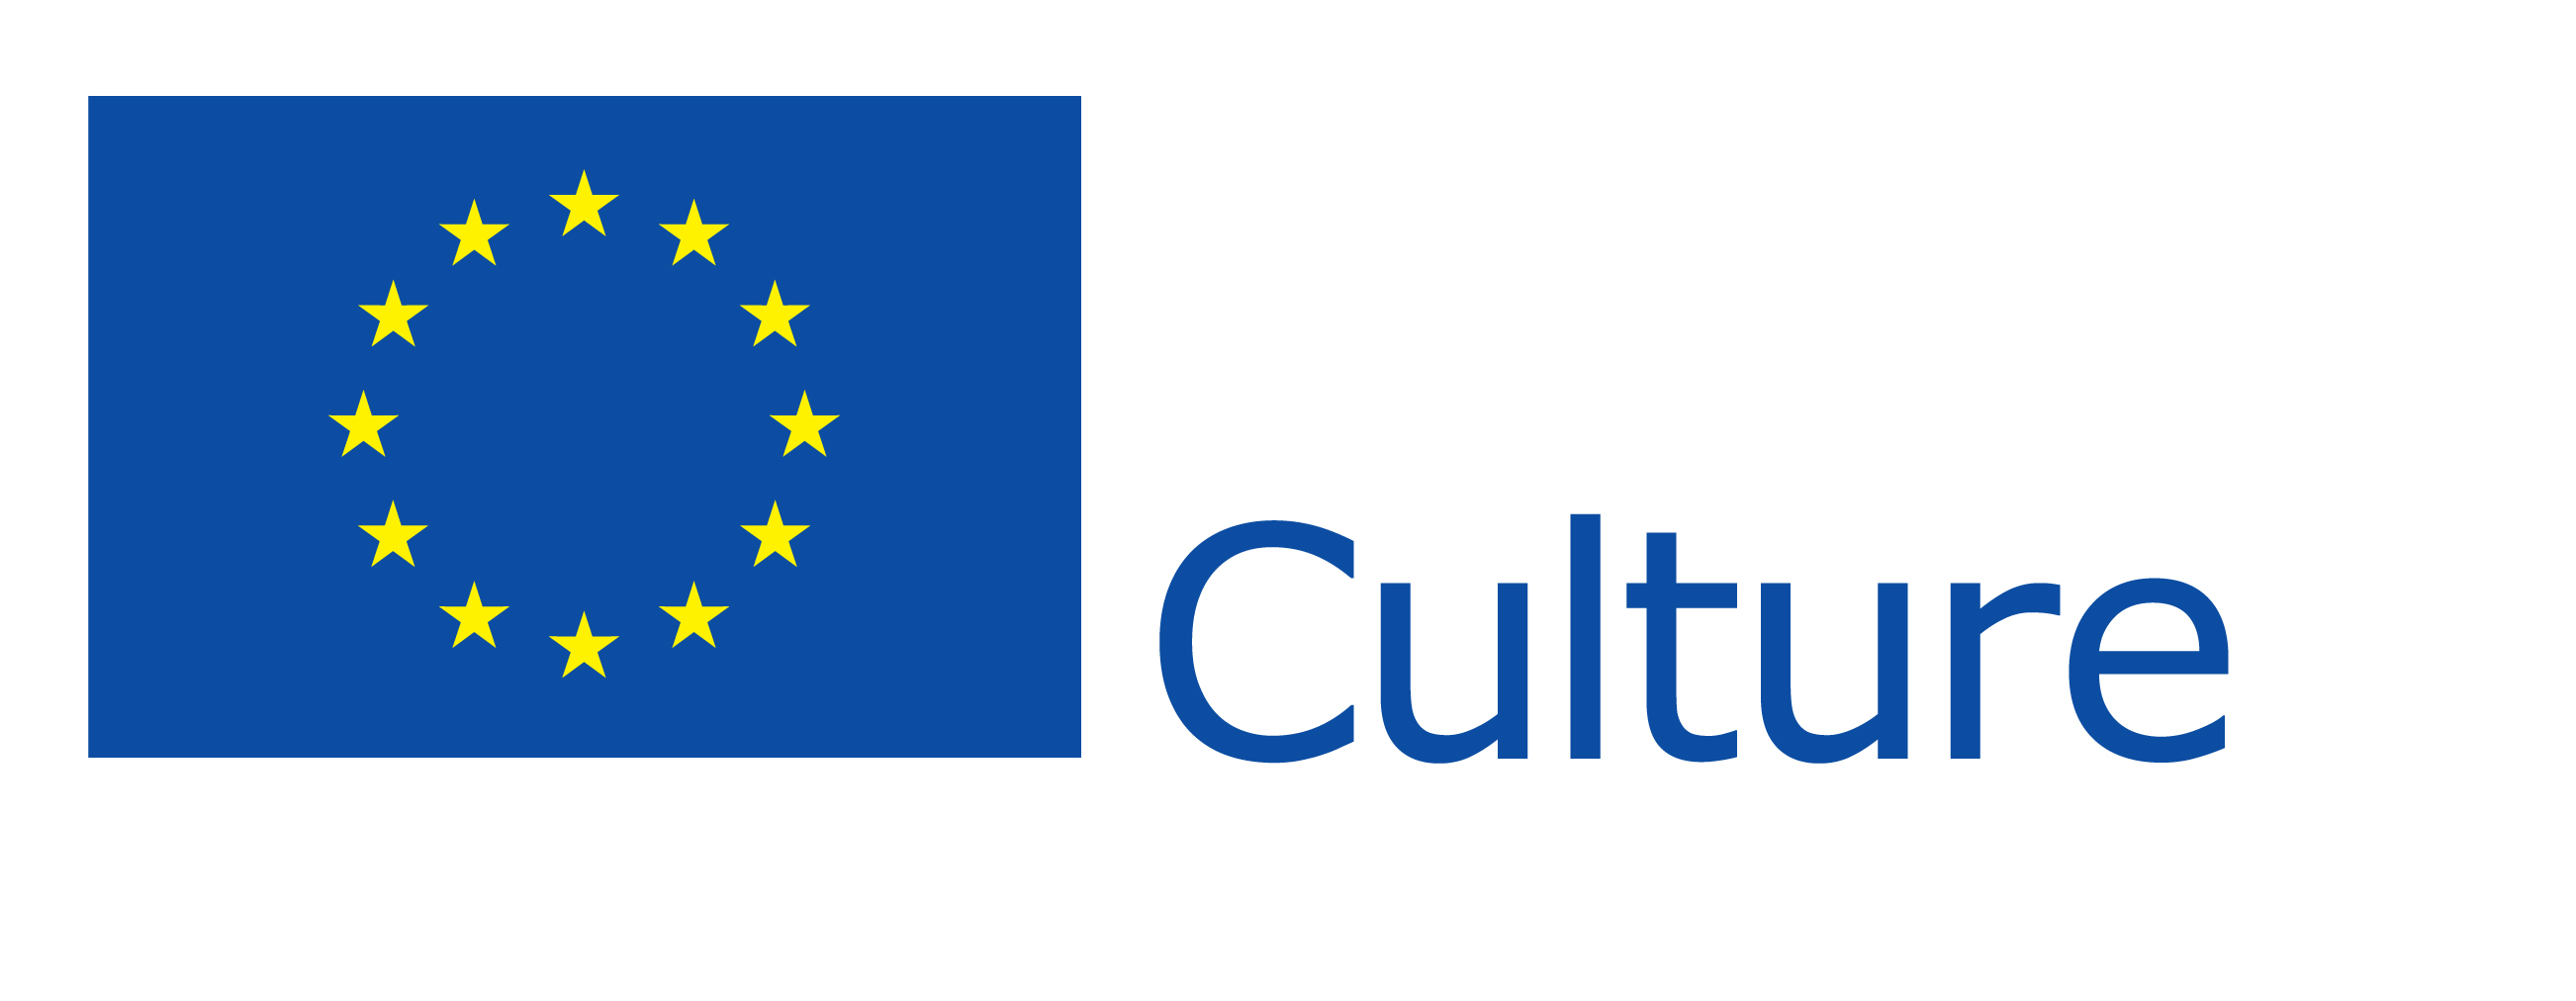 Culture Programme of The European Union